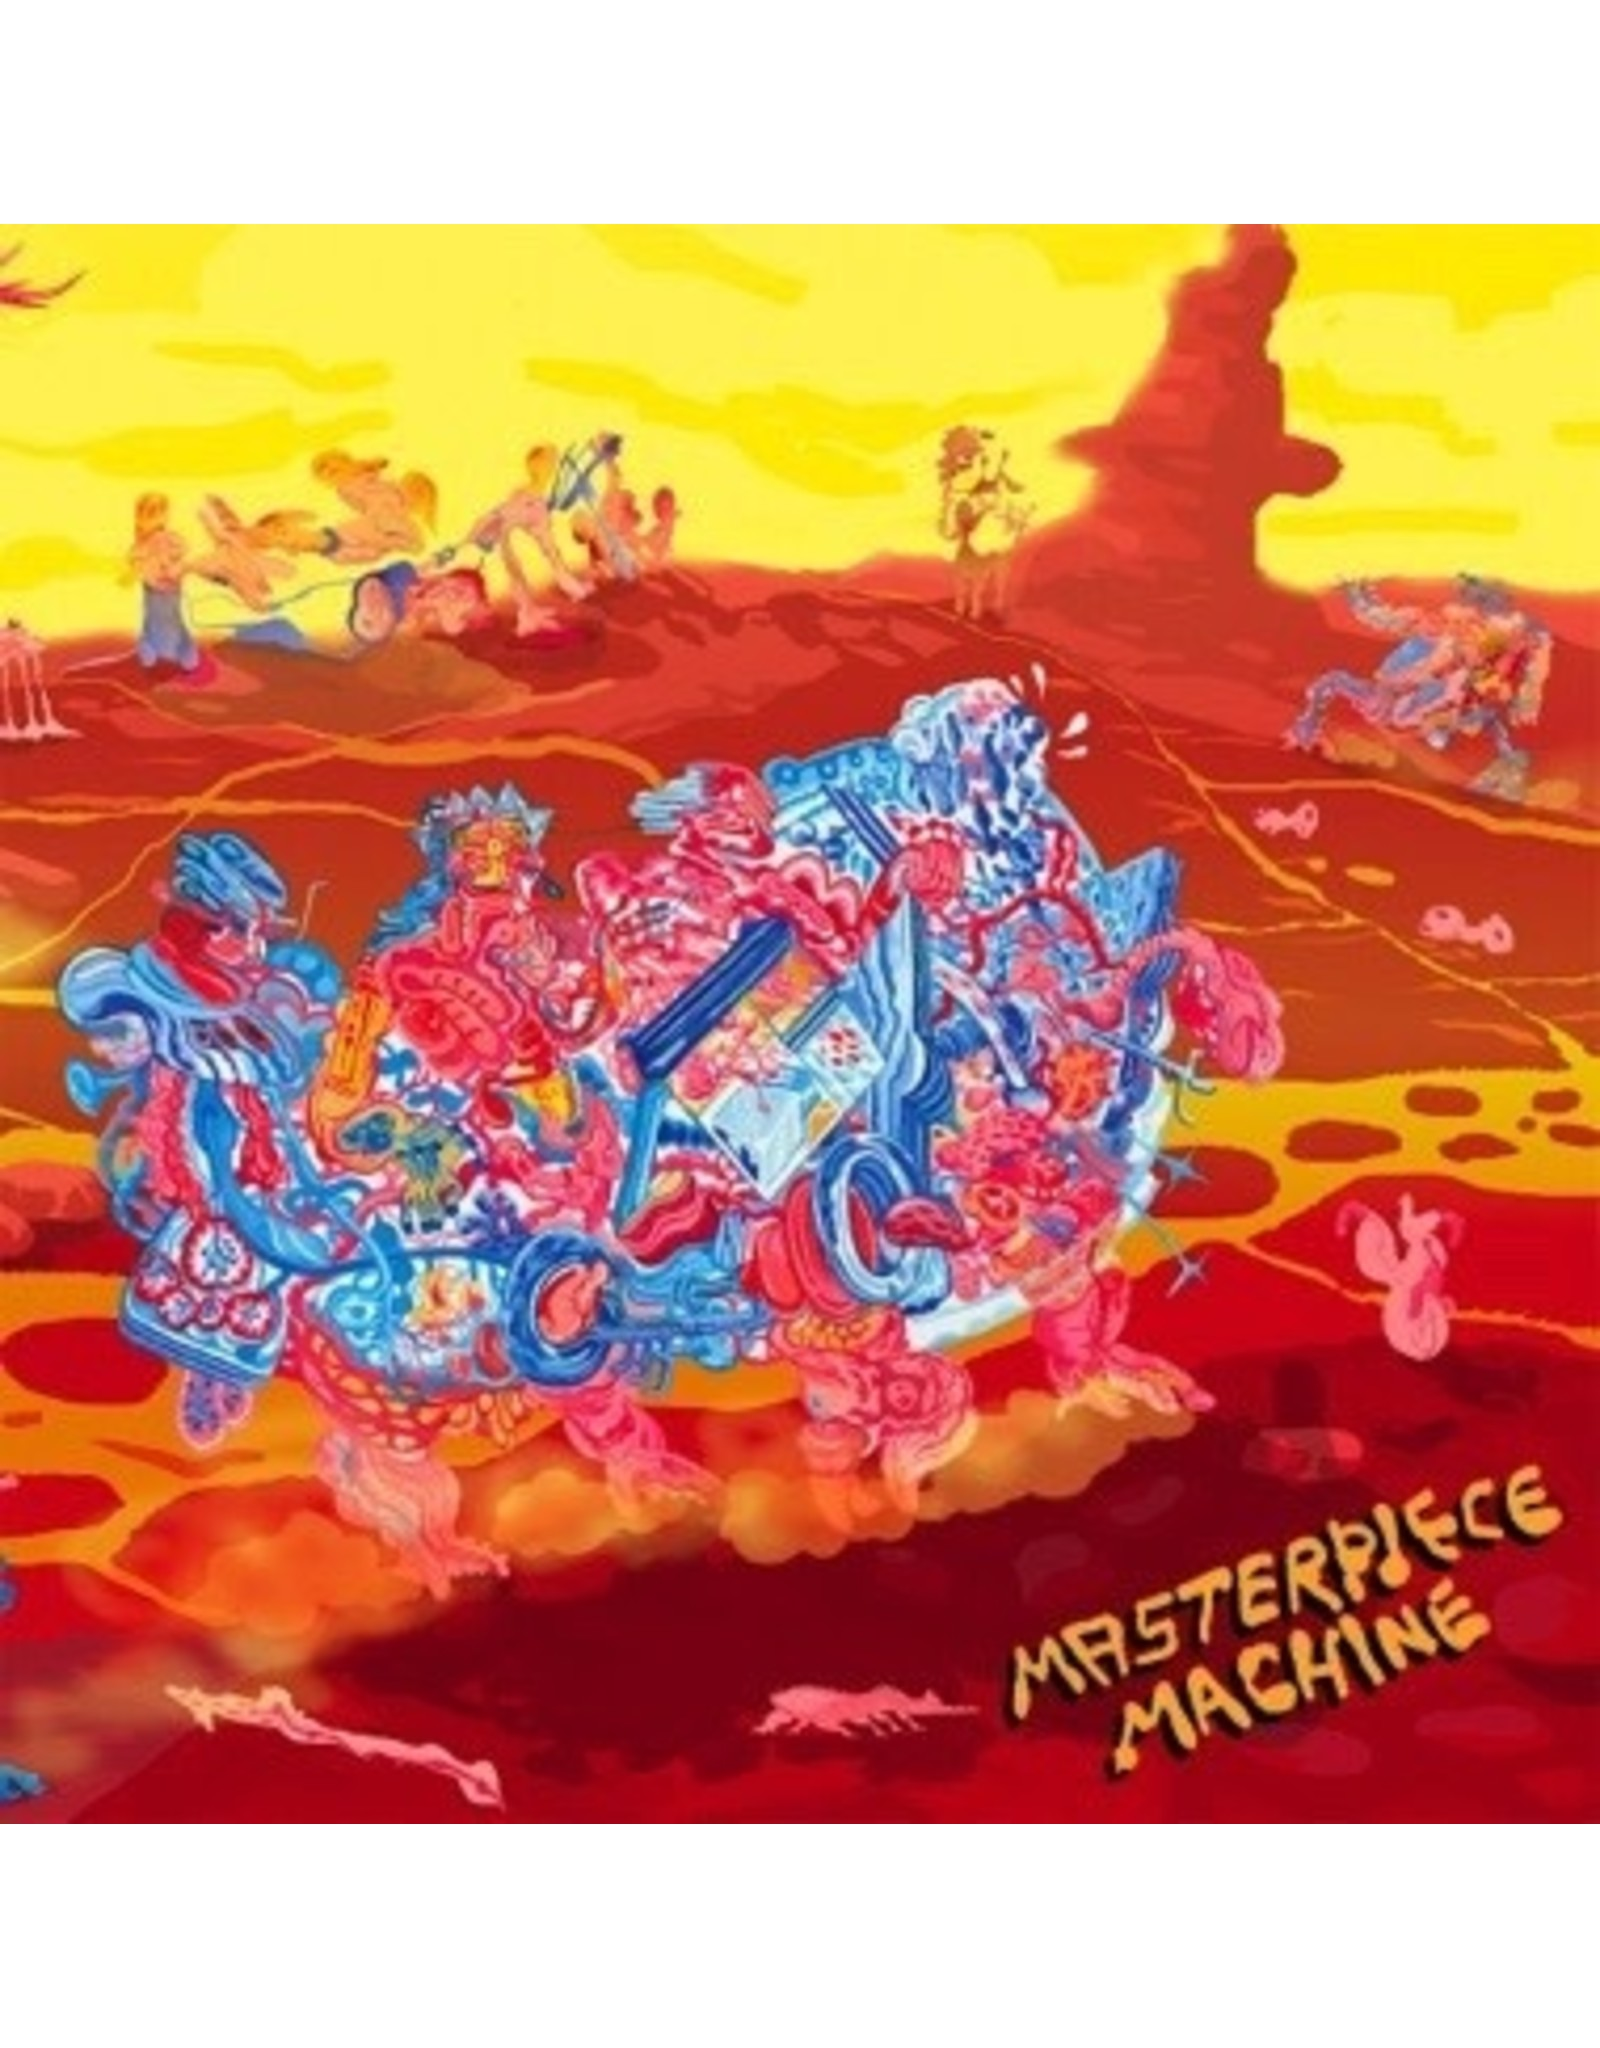 """New Vinyl Masterpiece Machine - Rotting Fruit / Letting You In On A Secret 12"""""""